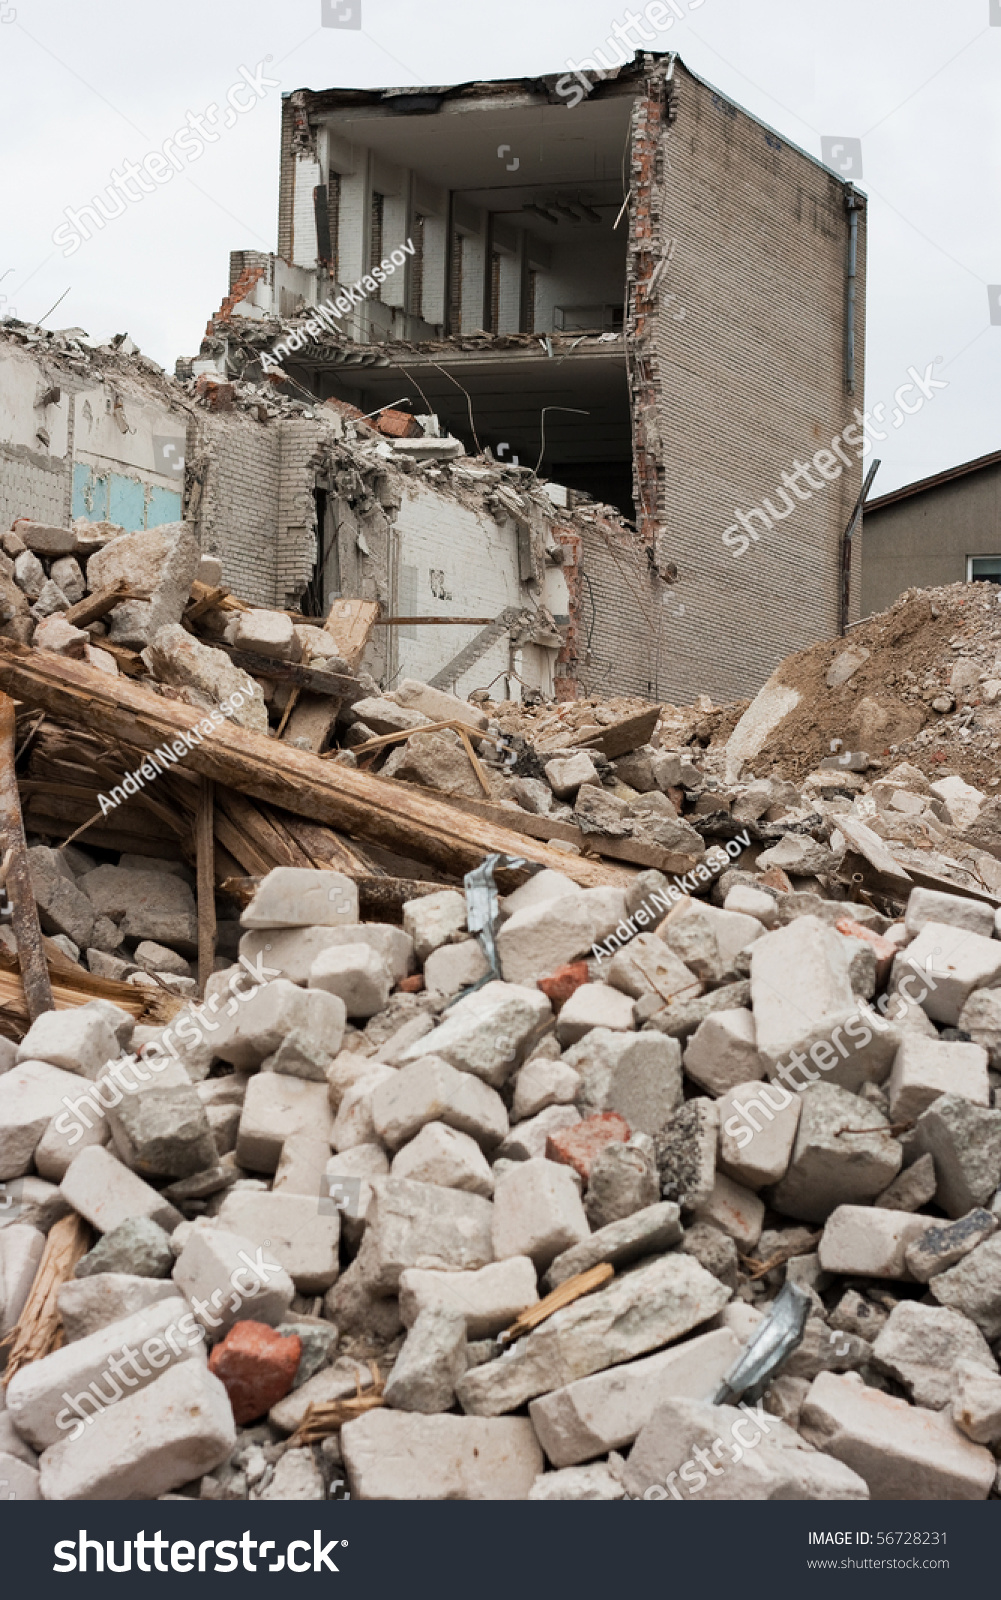 Pile Of Building Debris : Destroyed building and pile of debris stock photo